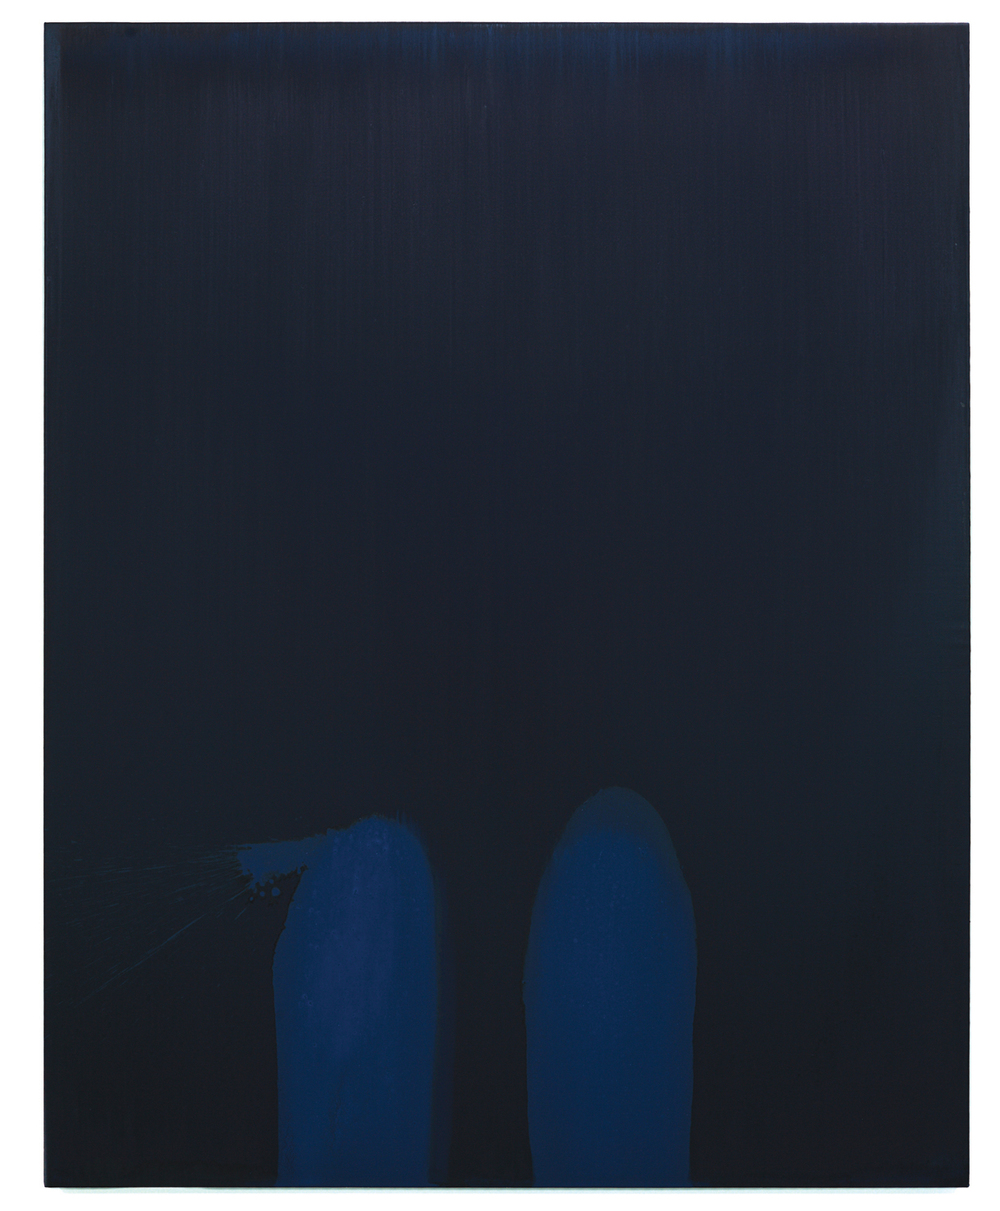 Luke HENG Blue on Blue no.2 2015 Oil on linen H170 x W135 x D5 cm